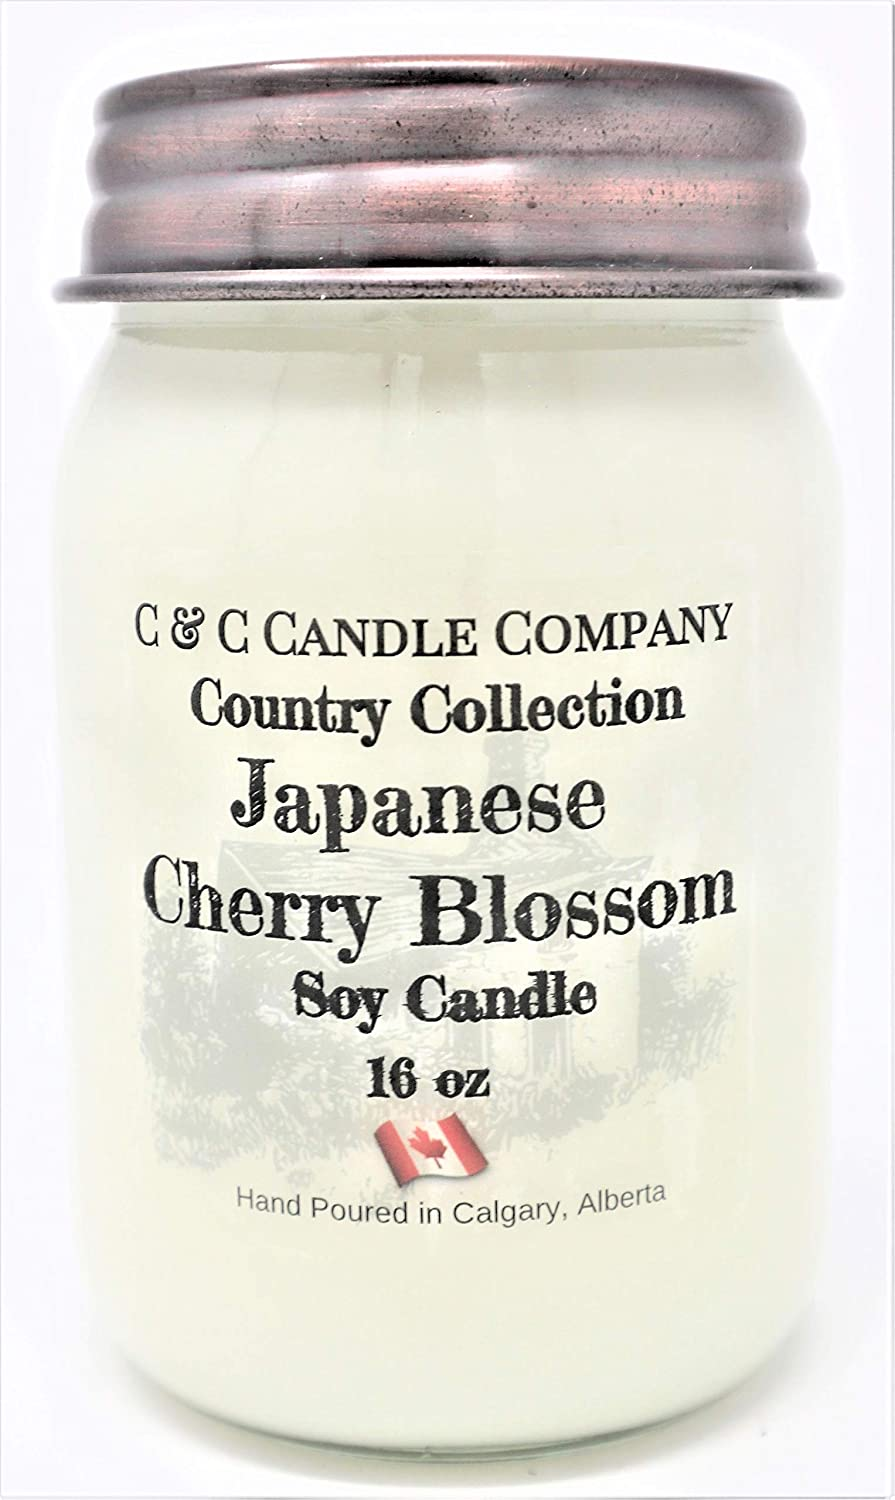 Canadian Made Hand Poured by C /& C Candle Company Inc. Large 16 oz Country Collection Japanese Cherry Blossom Soy Candle